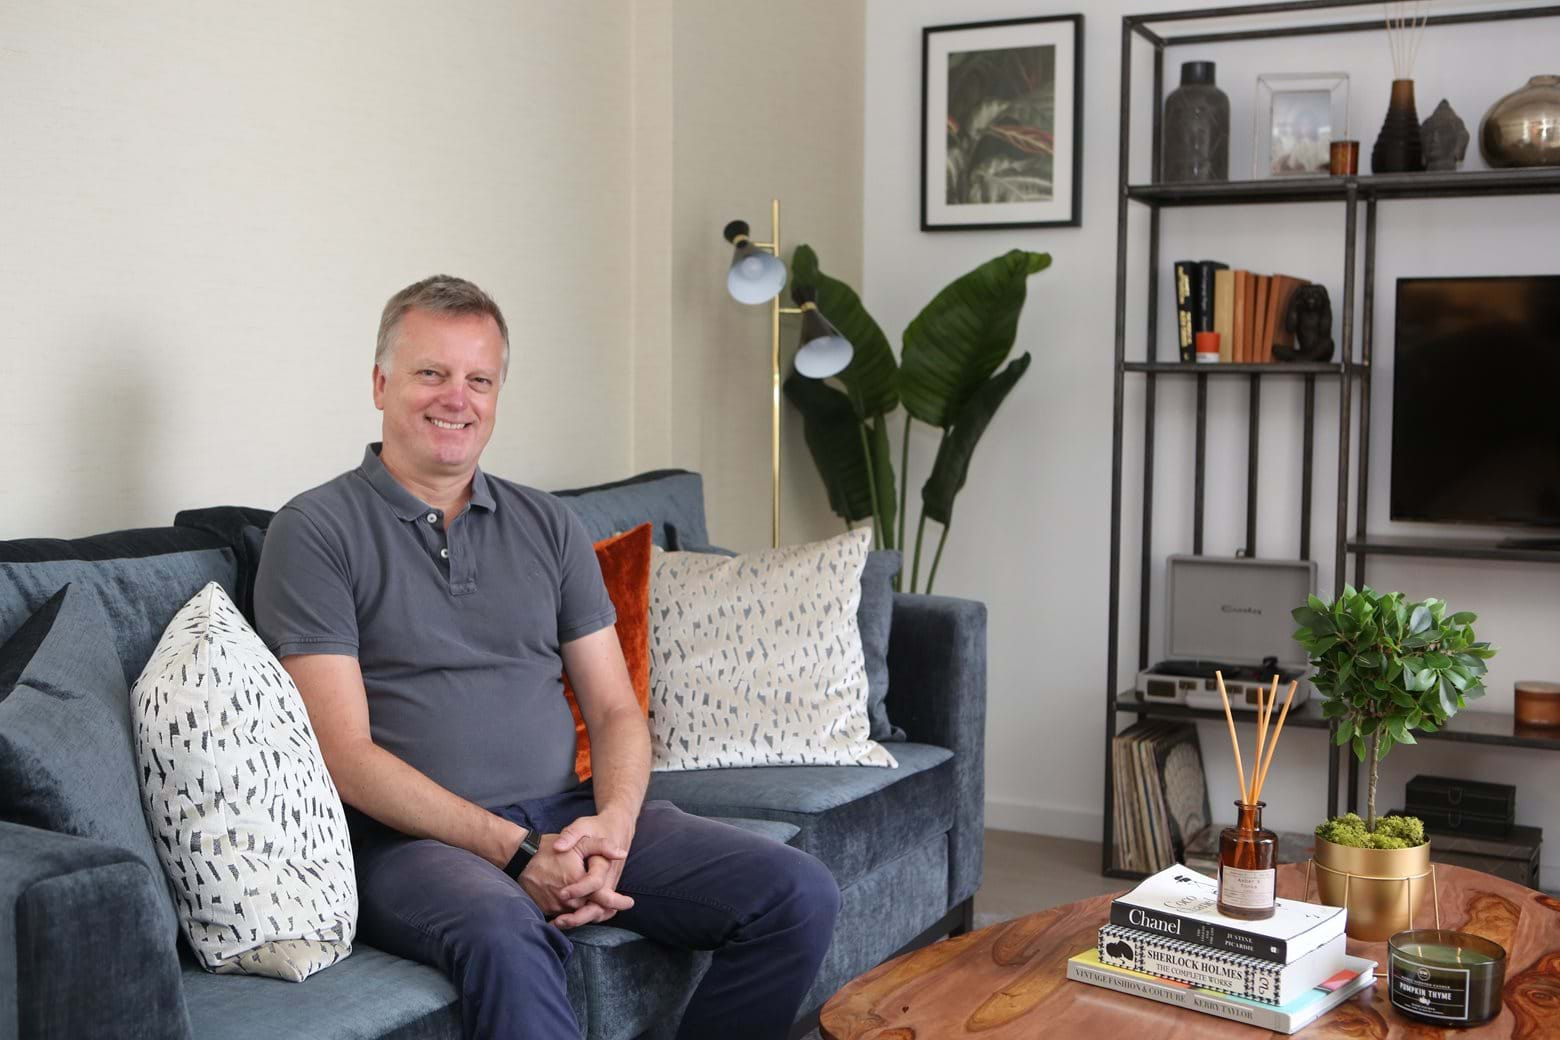 Martyn - Shared Ownership buyer with Peabody